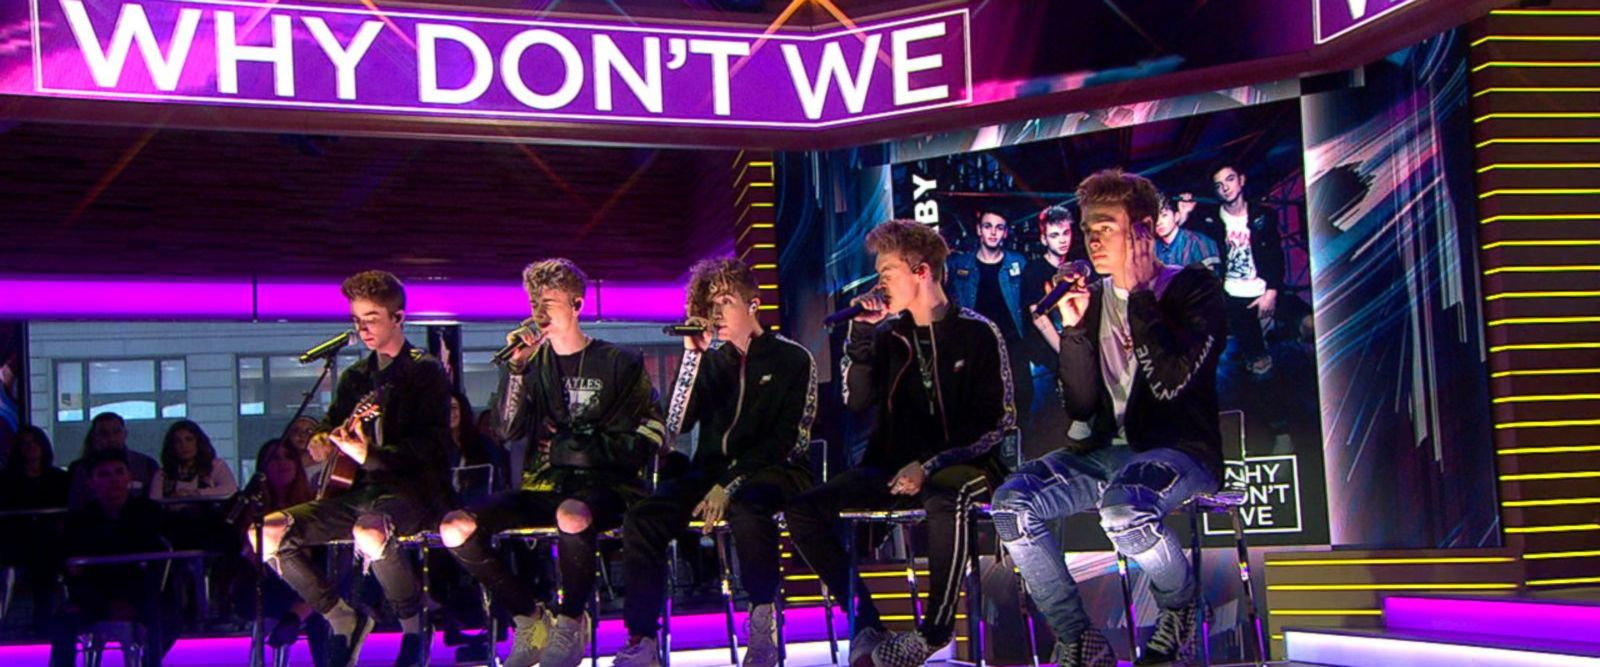 VIDEO: Why Don't We gives acoustic performance of 'Trust Fund Baby'